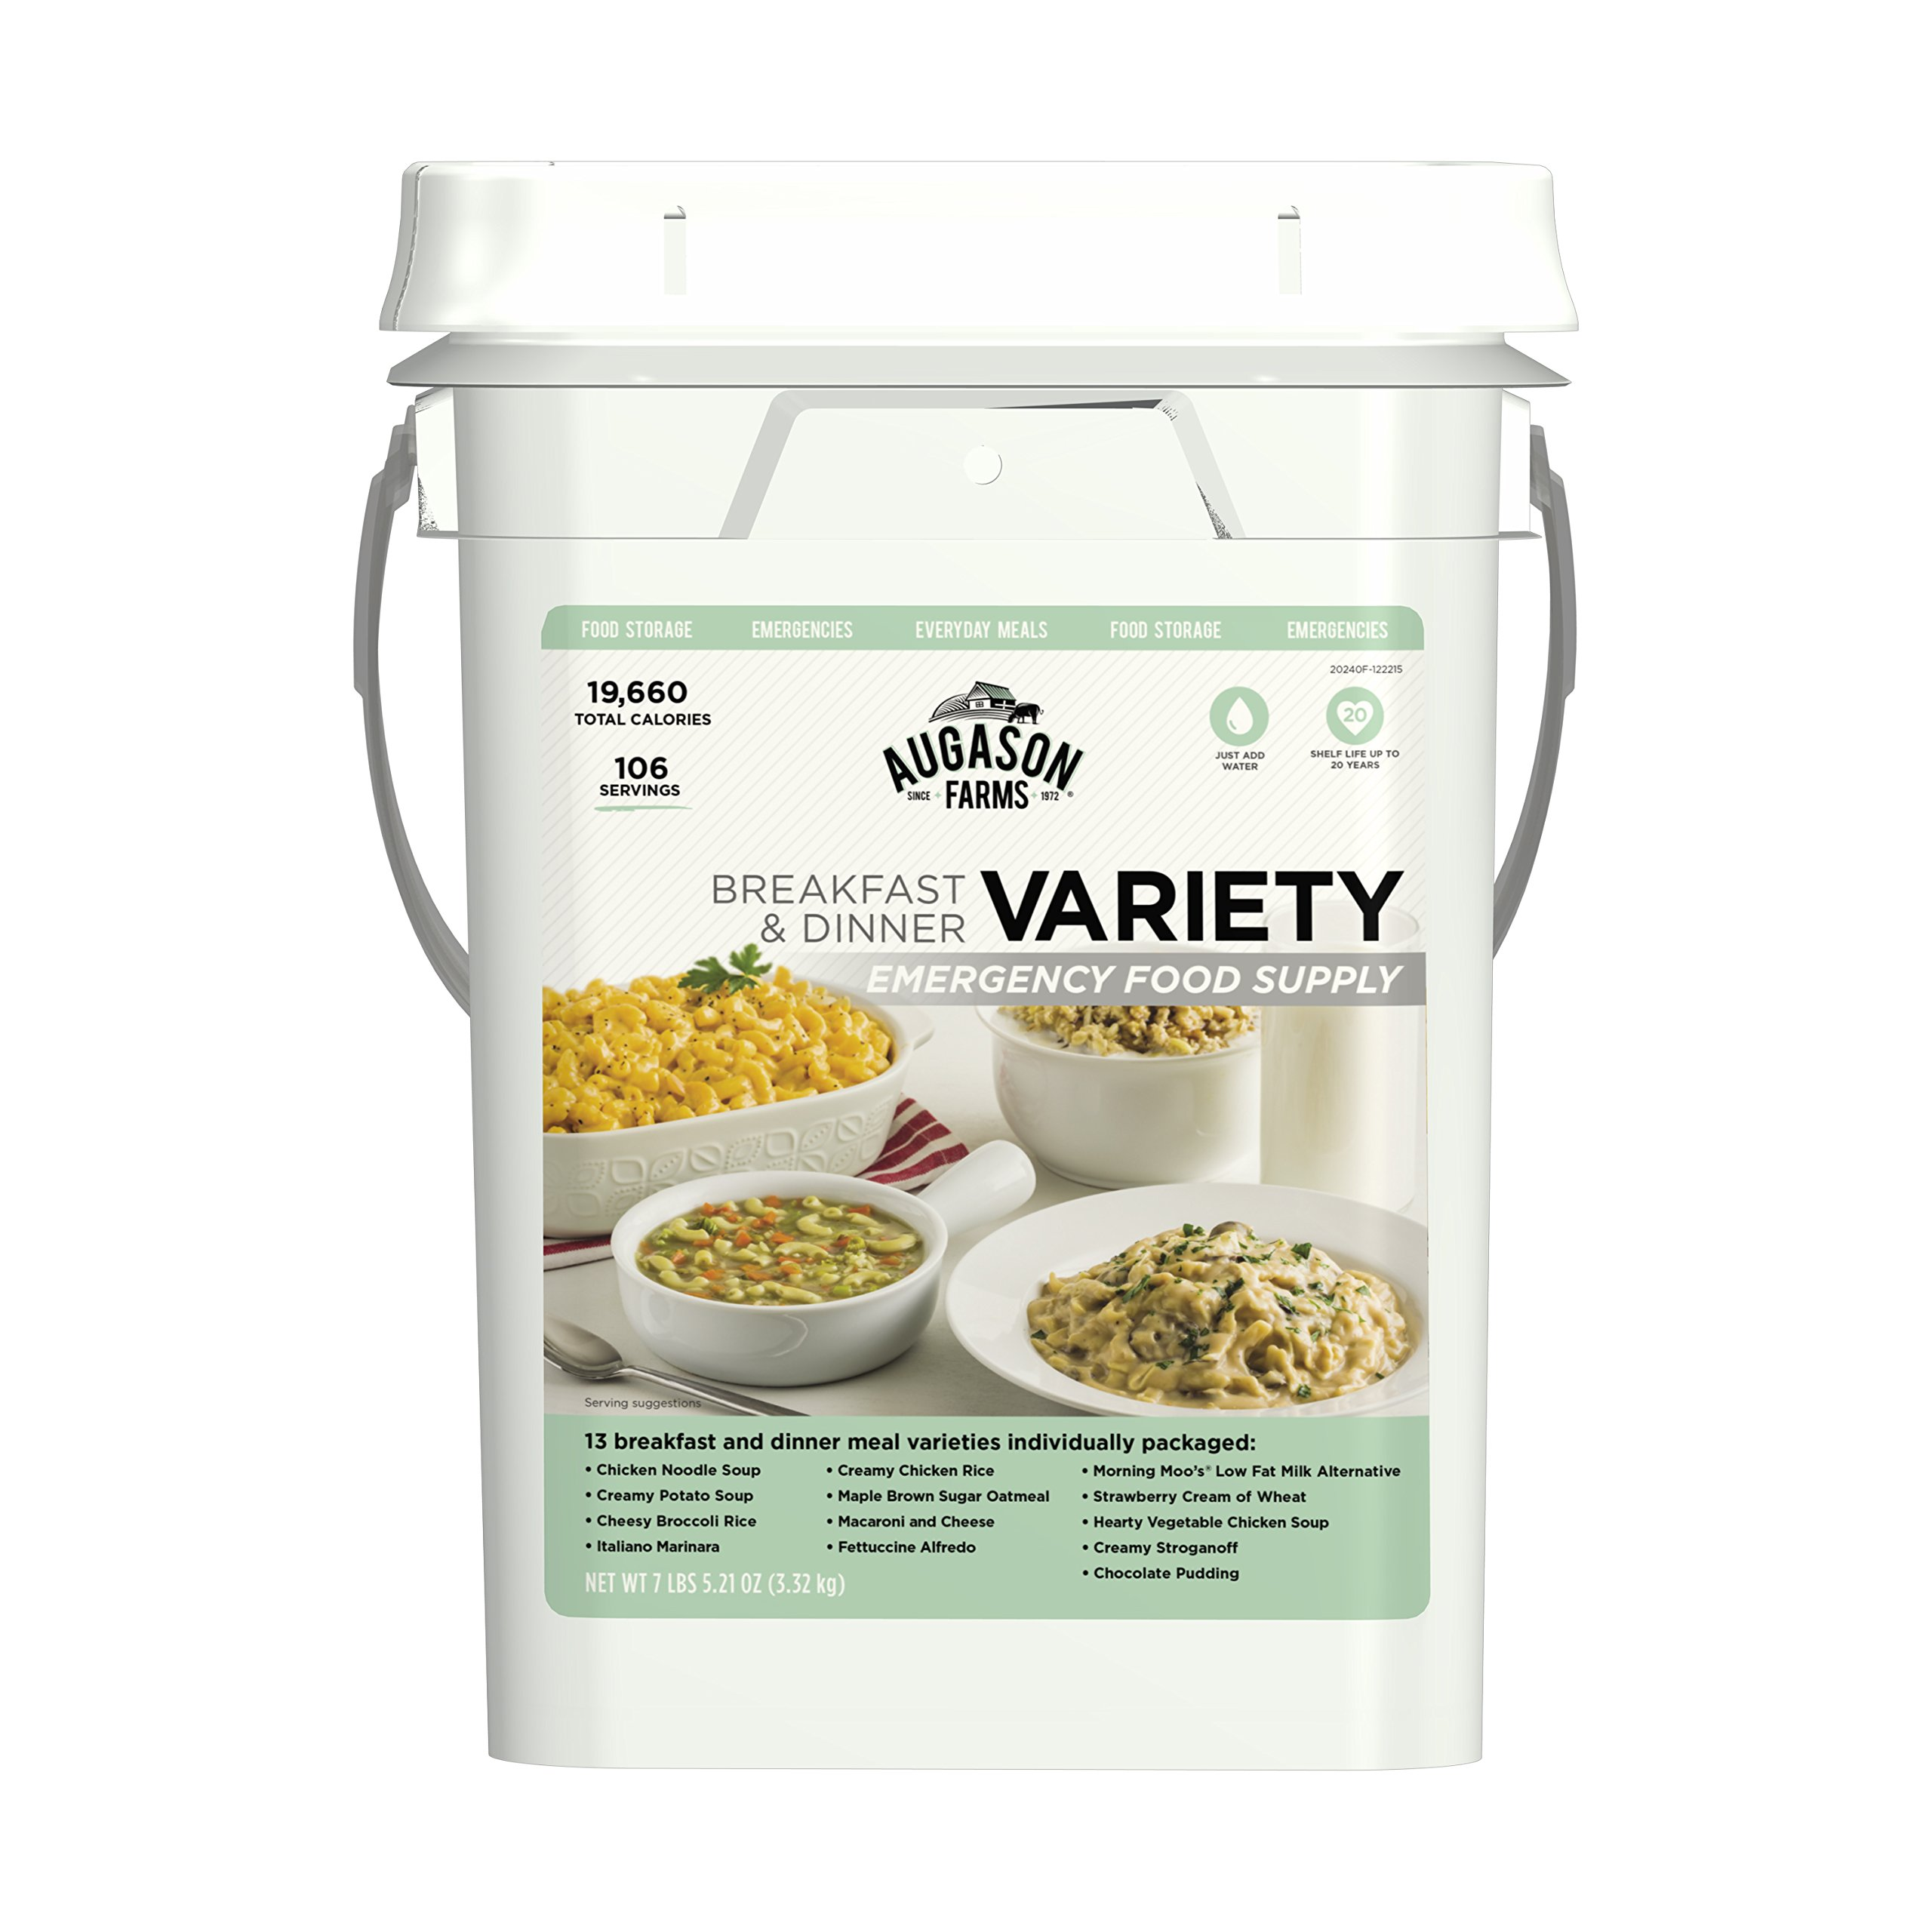 Augason Farms Breakfast & Dinner Variety Emergency Food Supply 7 lbs 5.21 oz 4 Gallon Pail